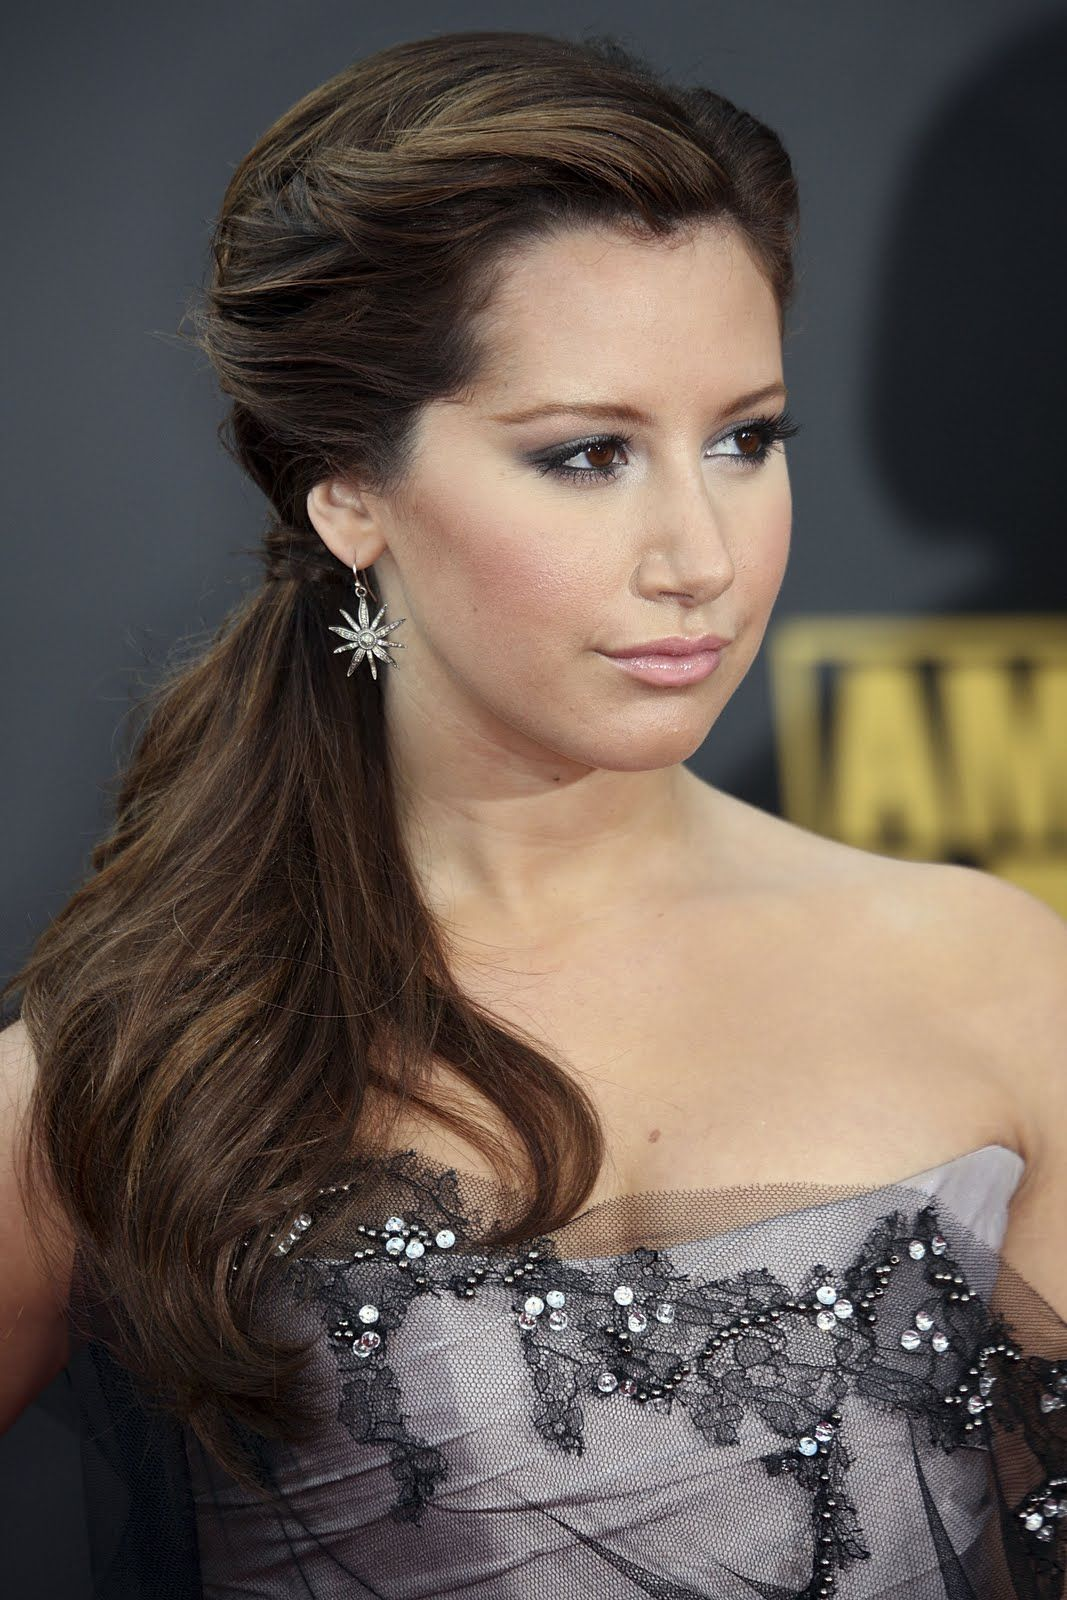 Quick Cute Ponytail Hairstyles Ponytail Hairstyles For All Hair Lengths The Fix Side Pony And